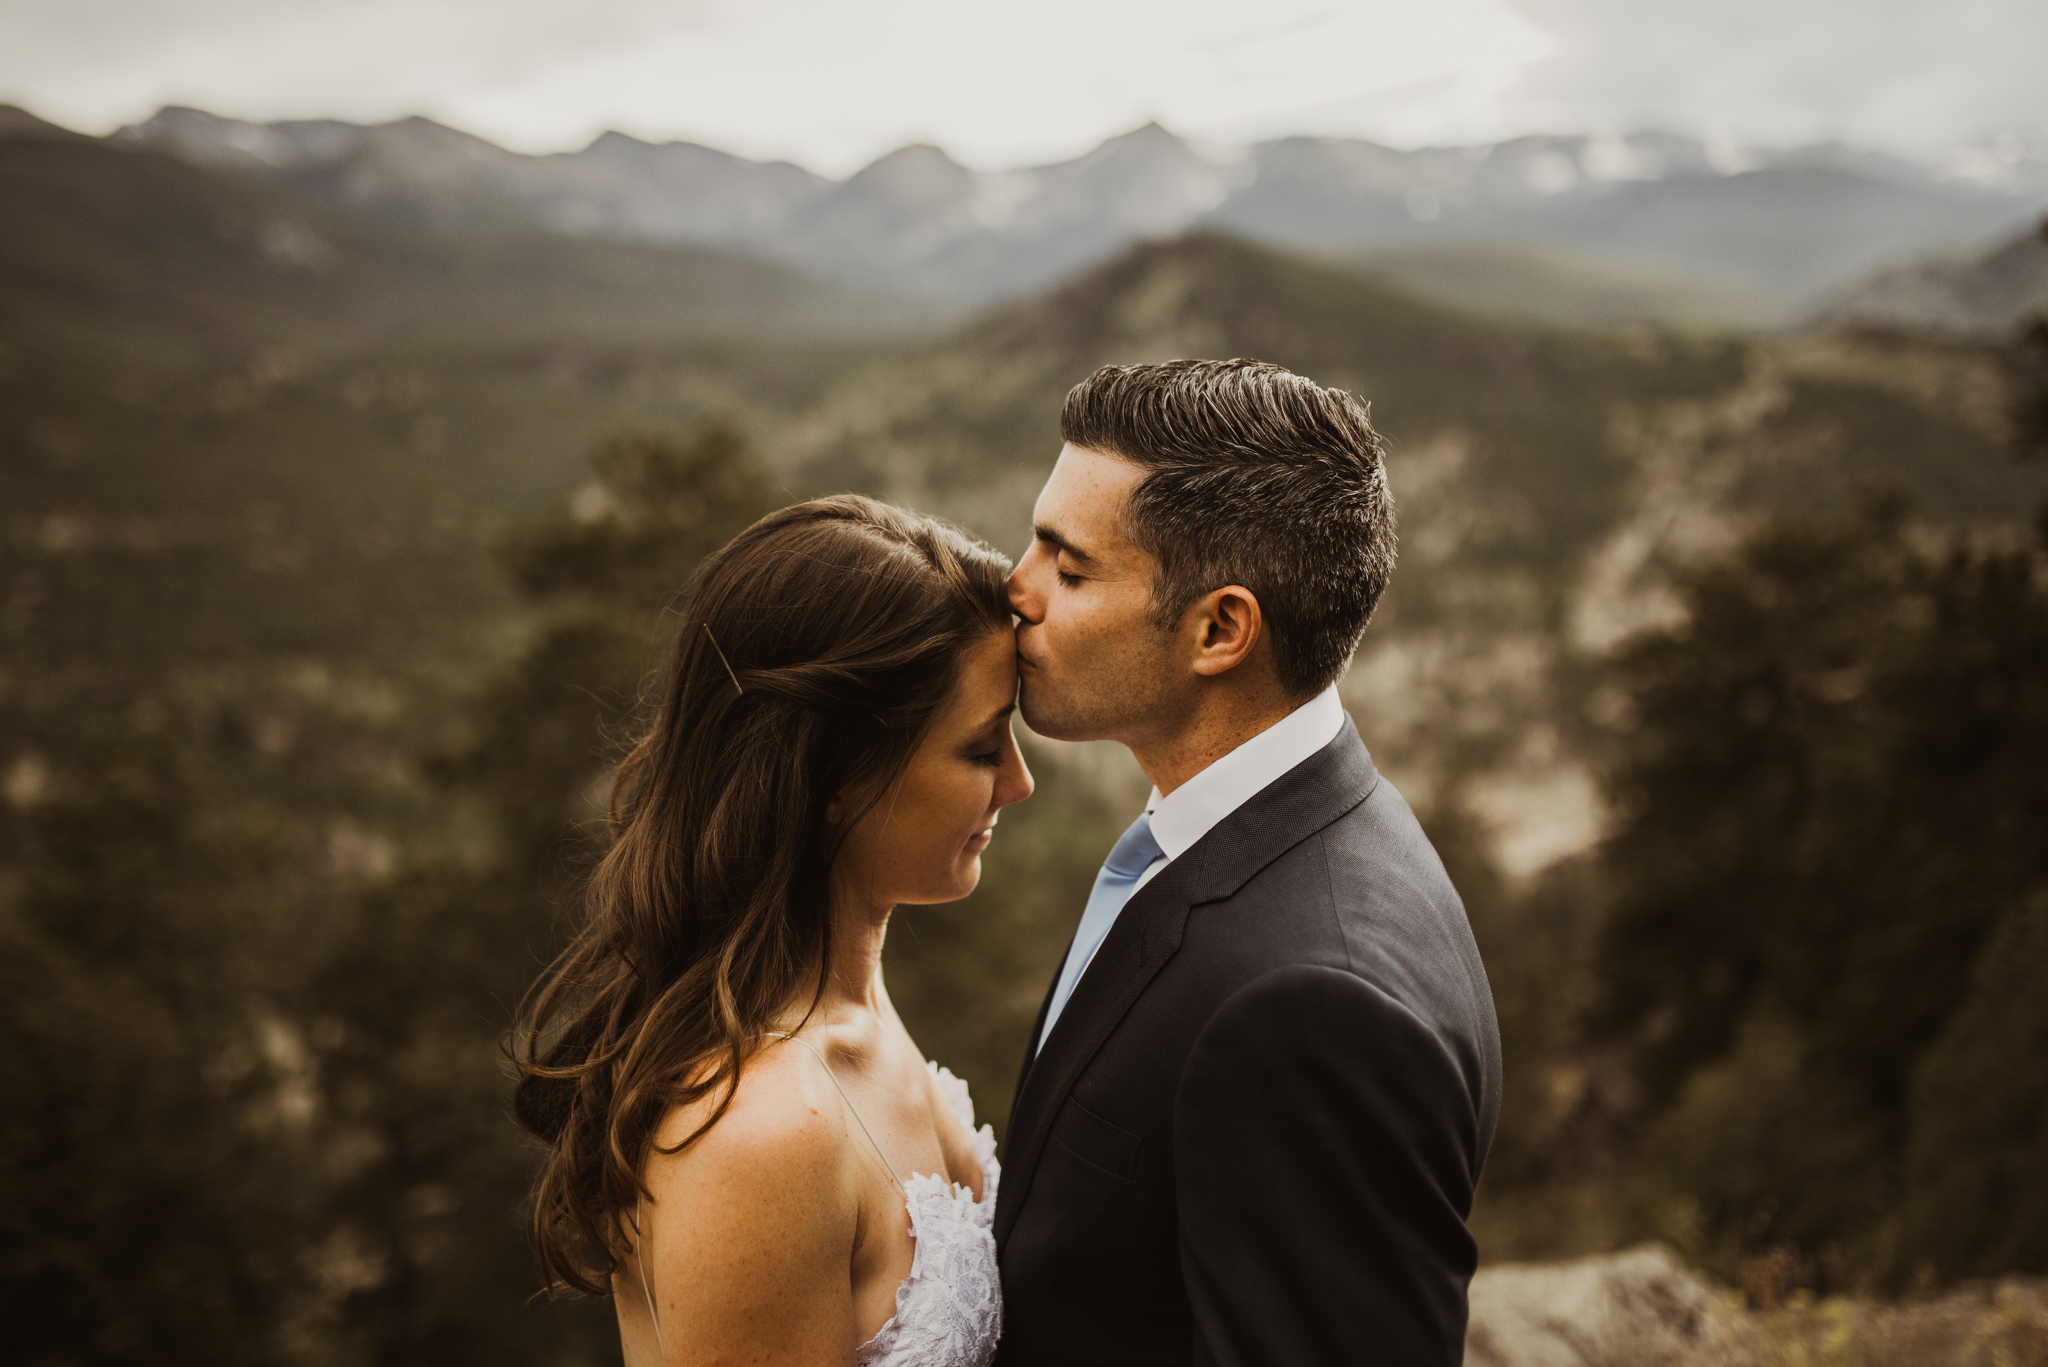 ©Isaiah + Taylor Photography - Estes National Park Adventure Elopement, Colorado Rockies-114.jpg